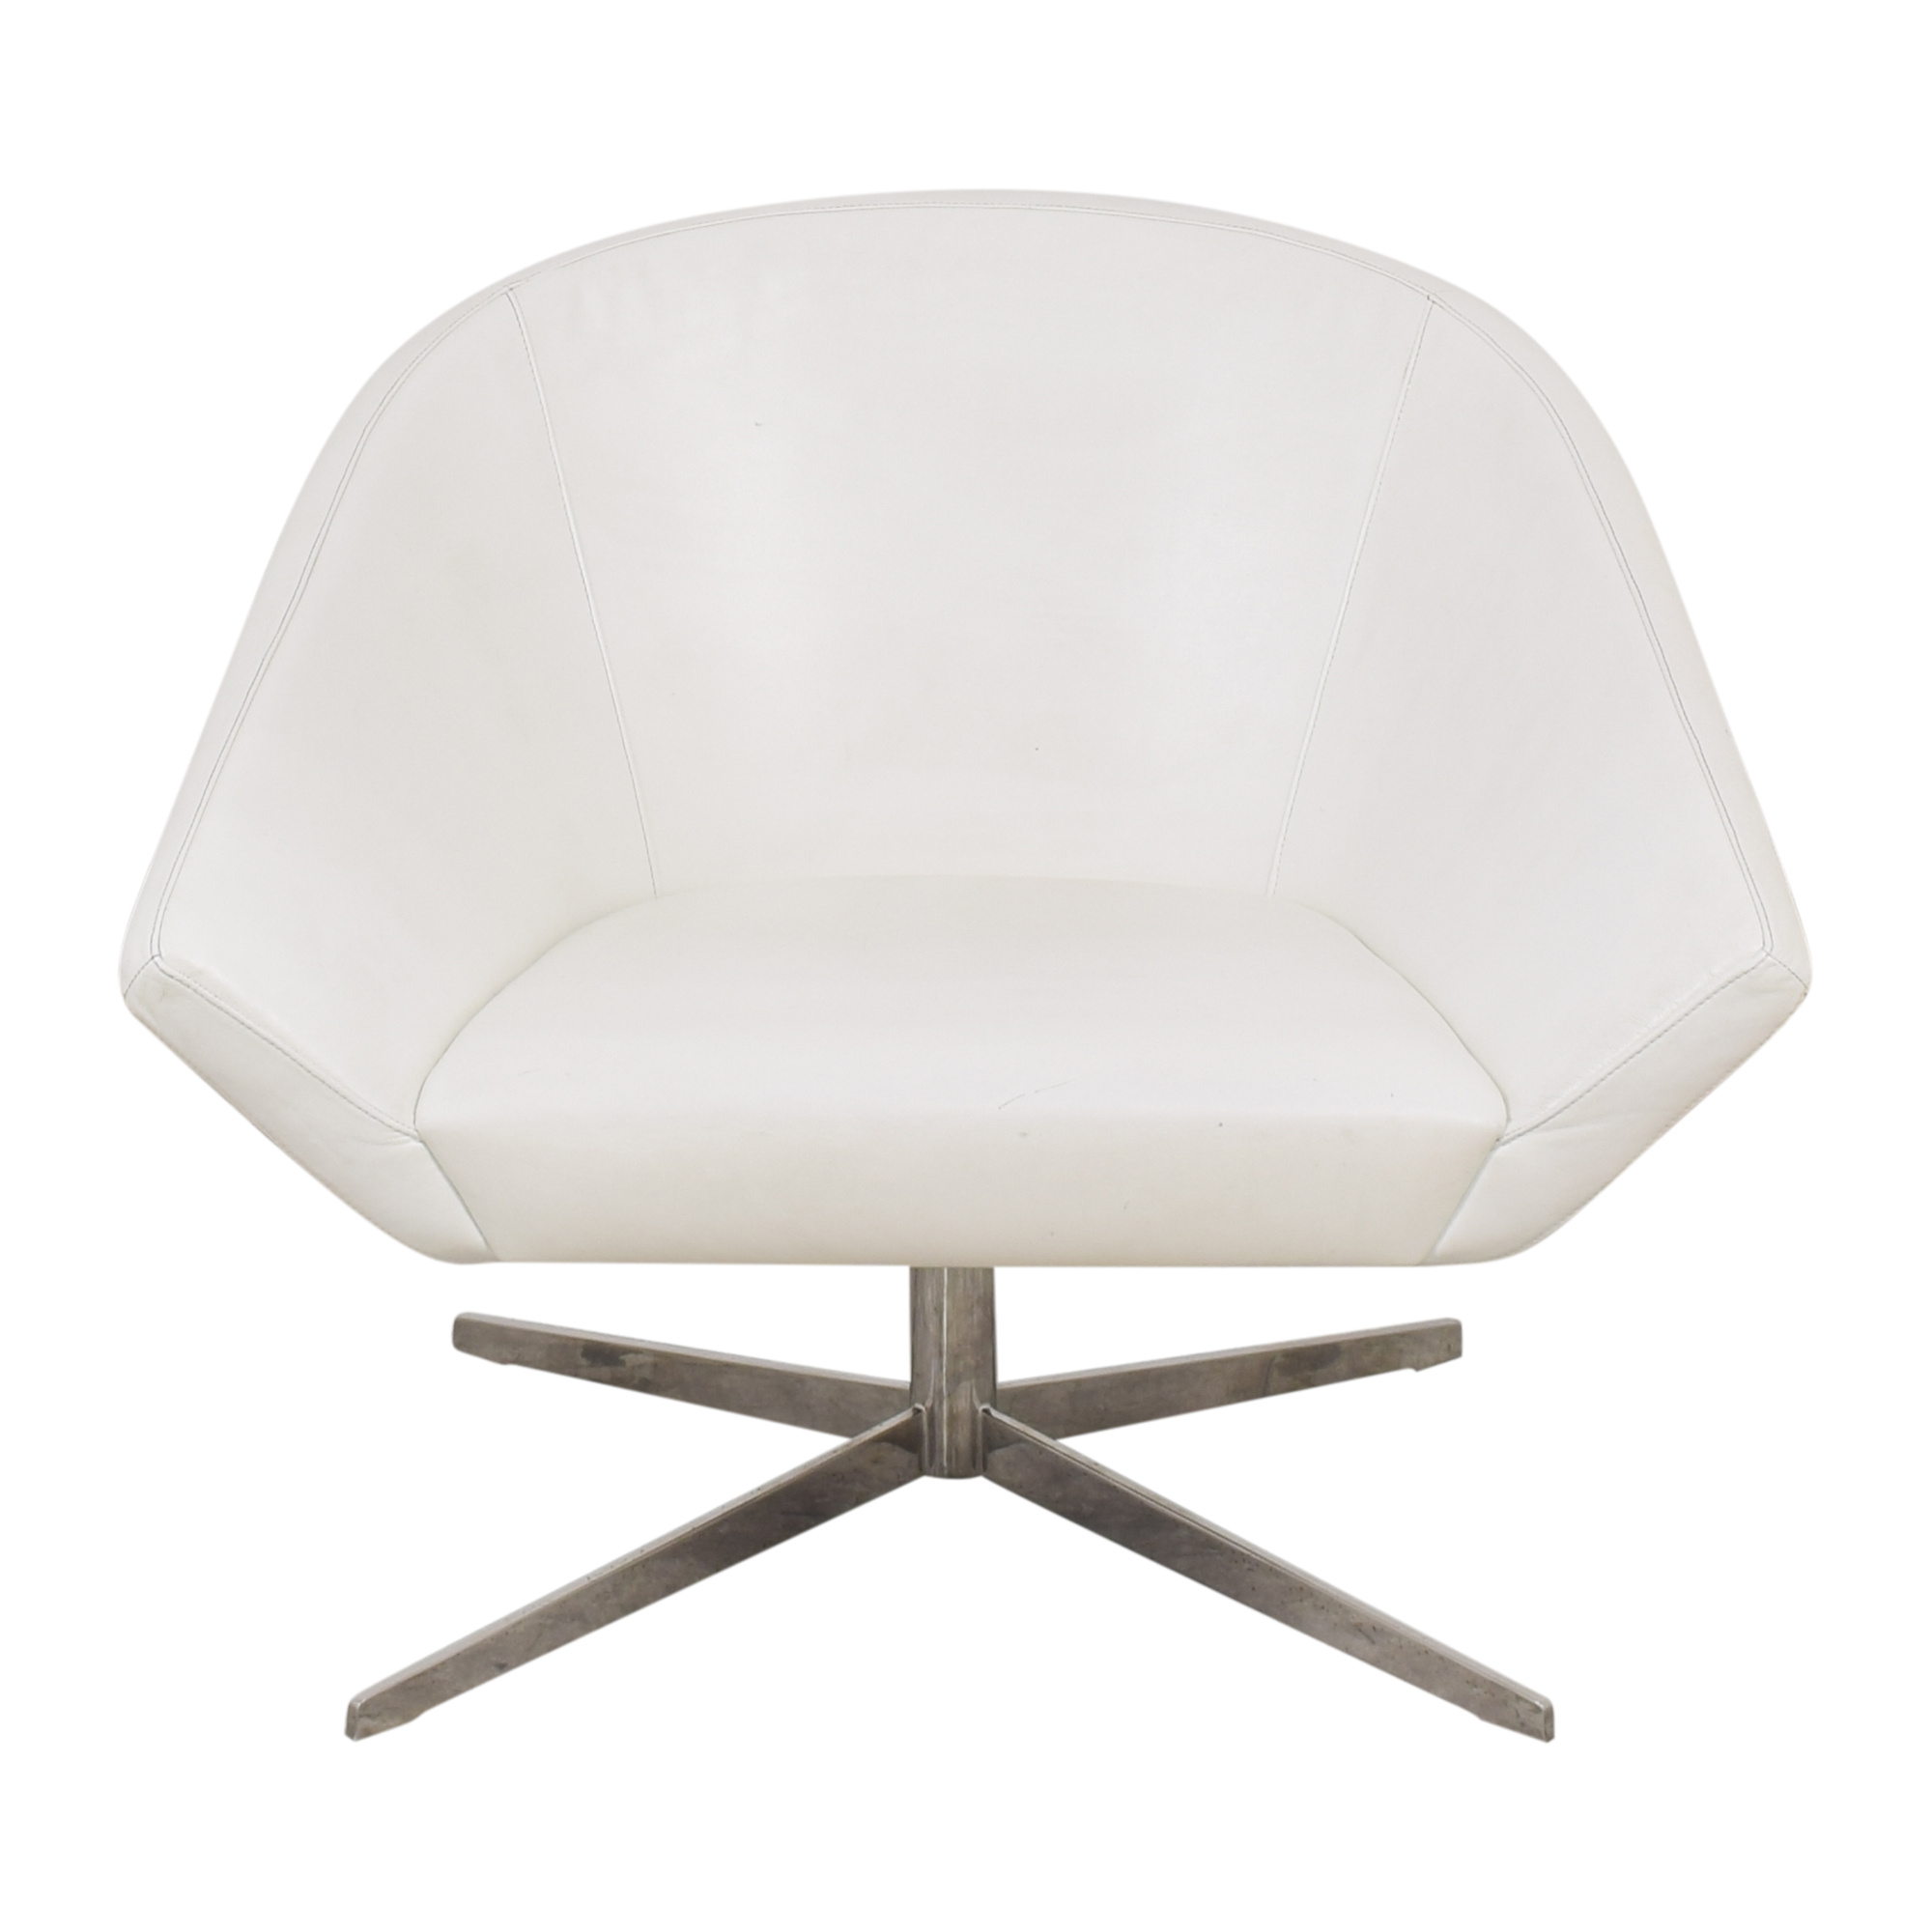 Bernhardt Bernhardt Remy Lounge Chair on sale